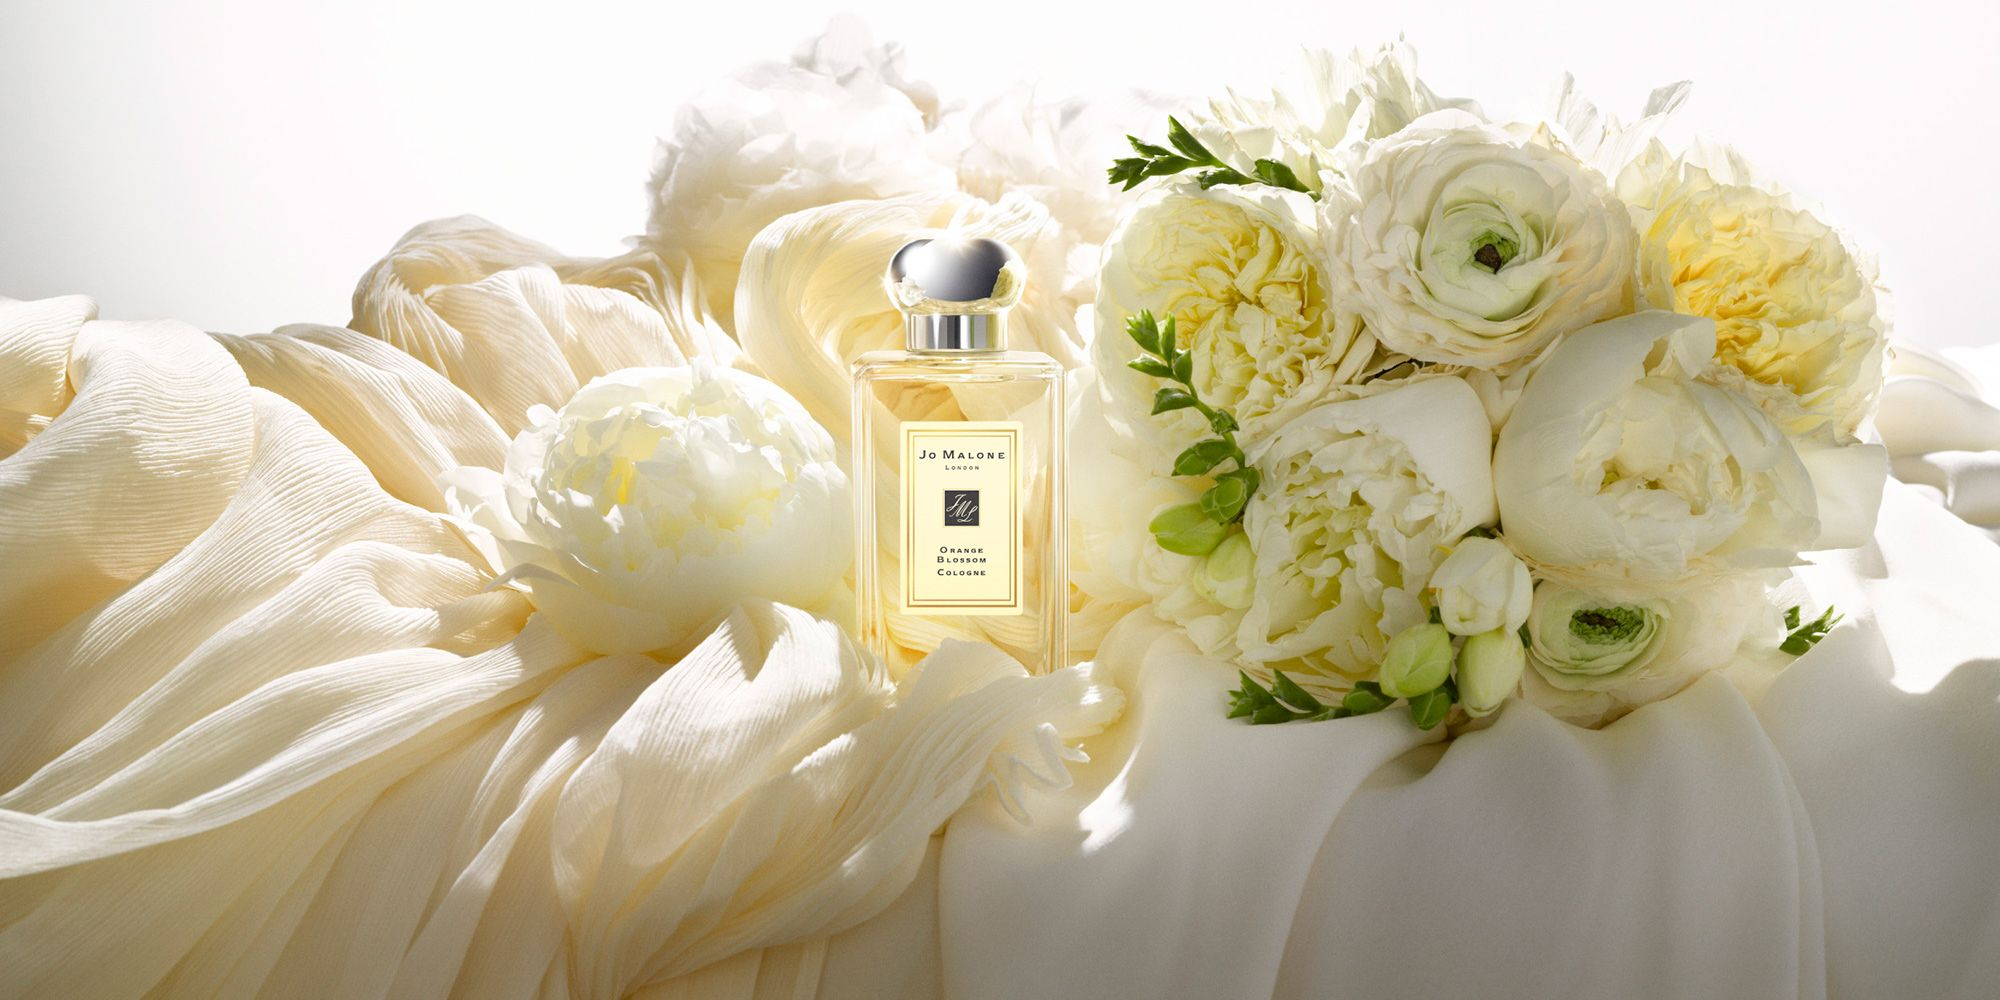 8 Of The Best Bridal Fragrance Services Bespoke Wedding Fragrances